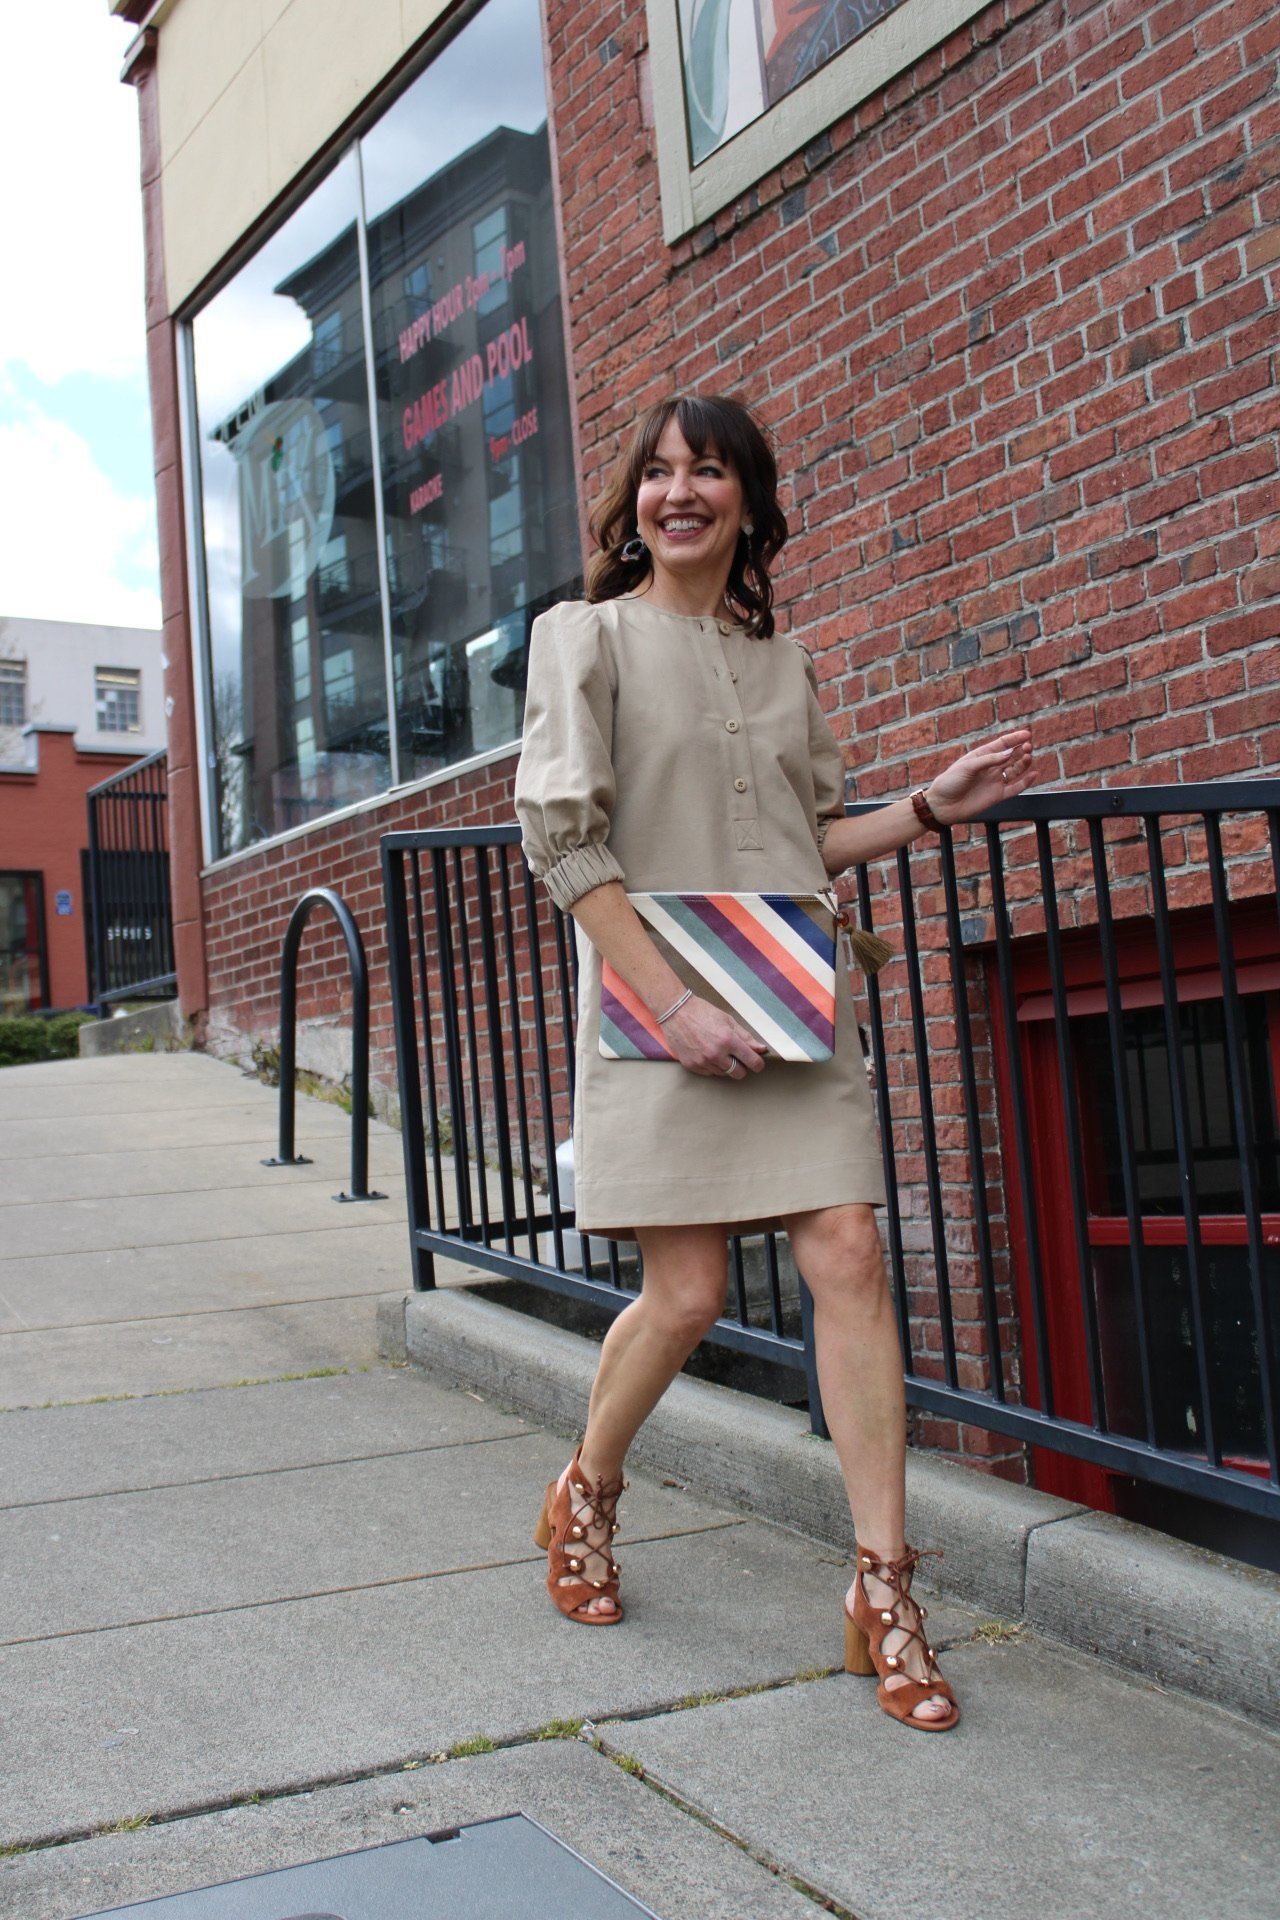 beige rebecca minkoff modern puff sleeve dress with brown peeptoe booties and striped clutch